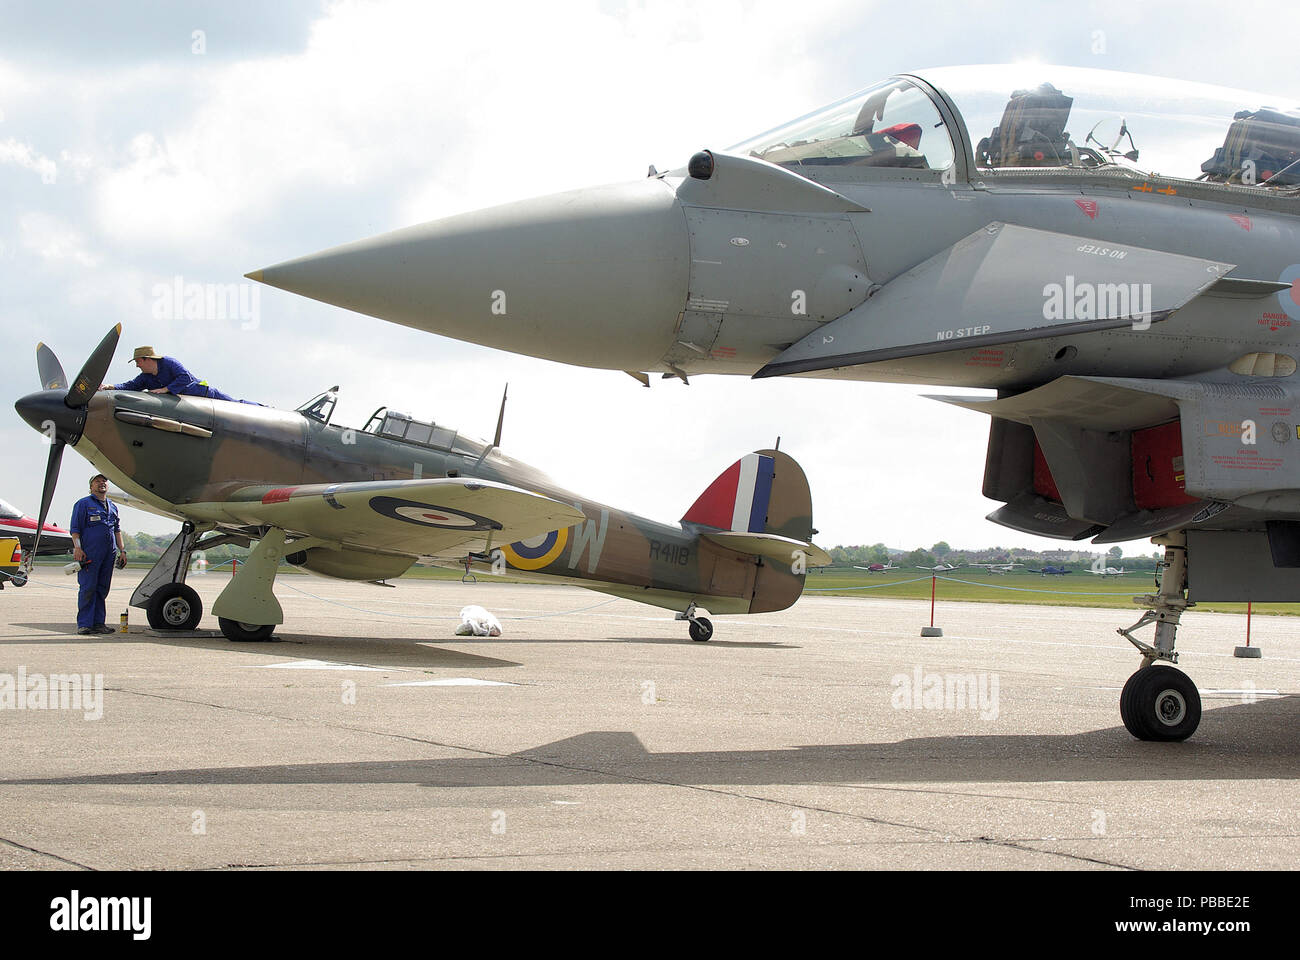 Second World War Hawker Hurricane R4118 with modern day jet fighter plane  Eurofighter Typhoon. Old 0b778fc92d89